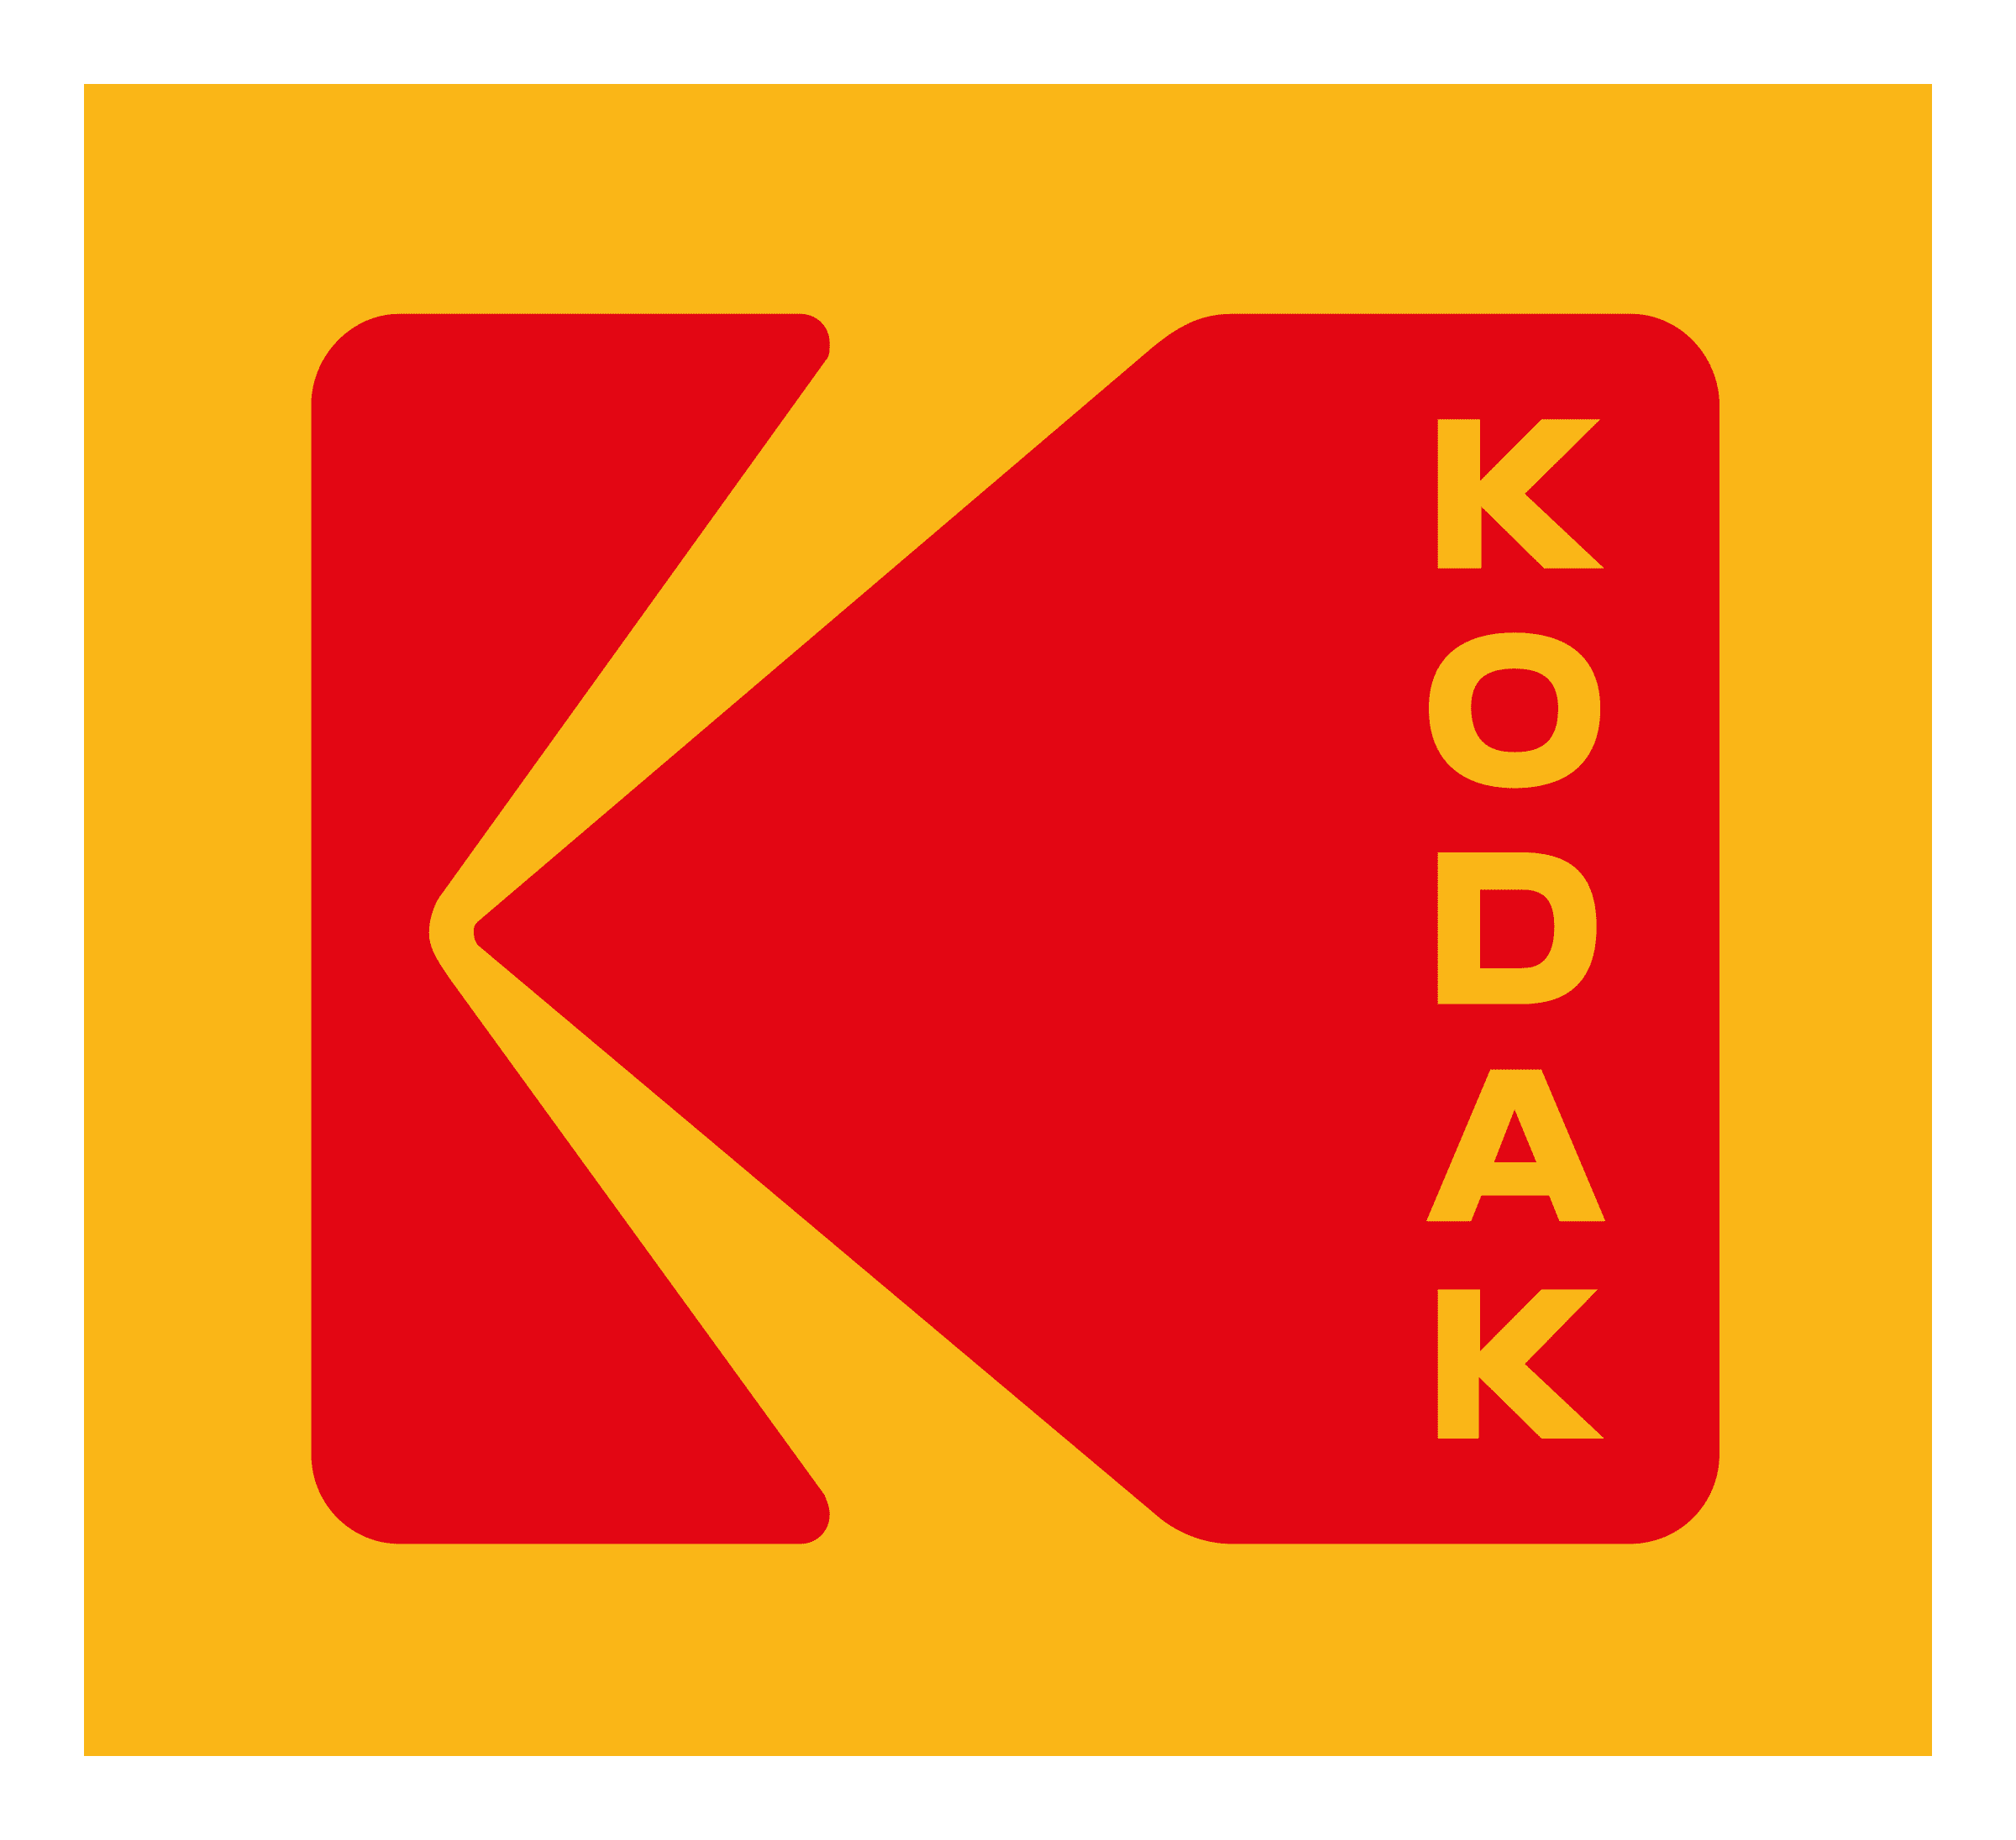 https://propellerinsights.com/wp-content/uploads/2018/12/Kodak-Logo.png